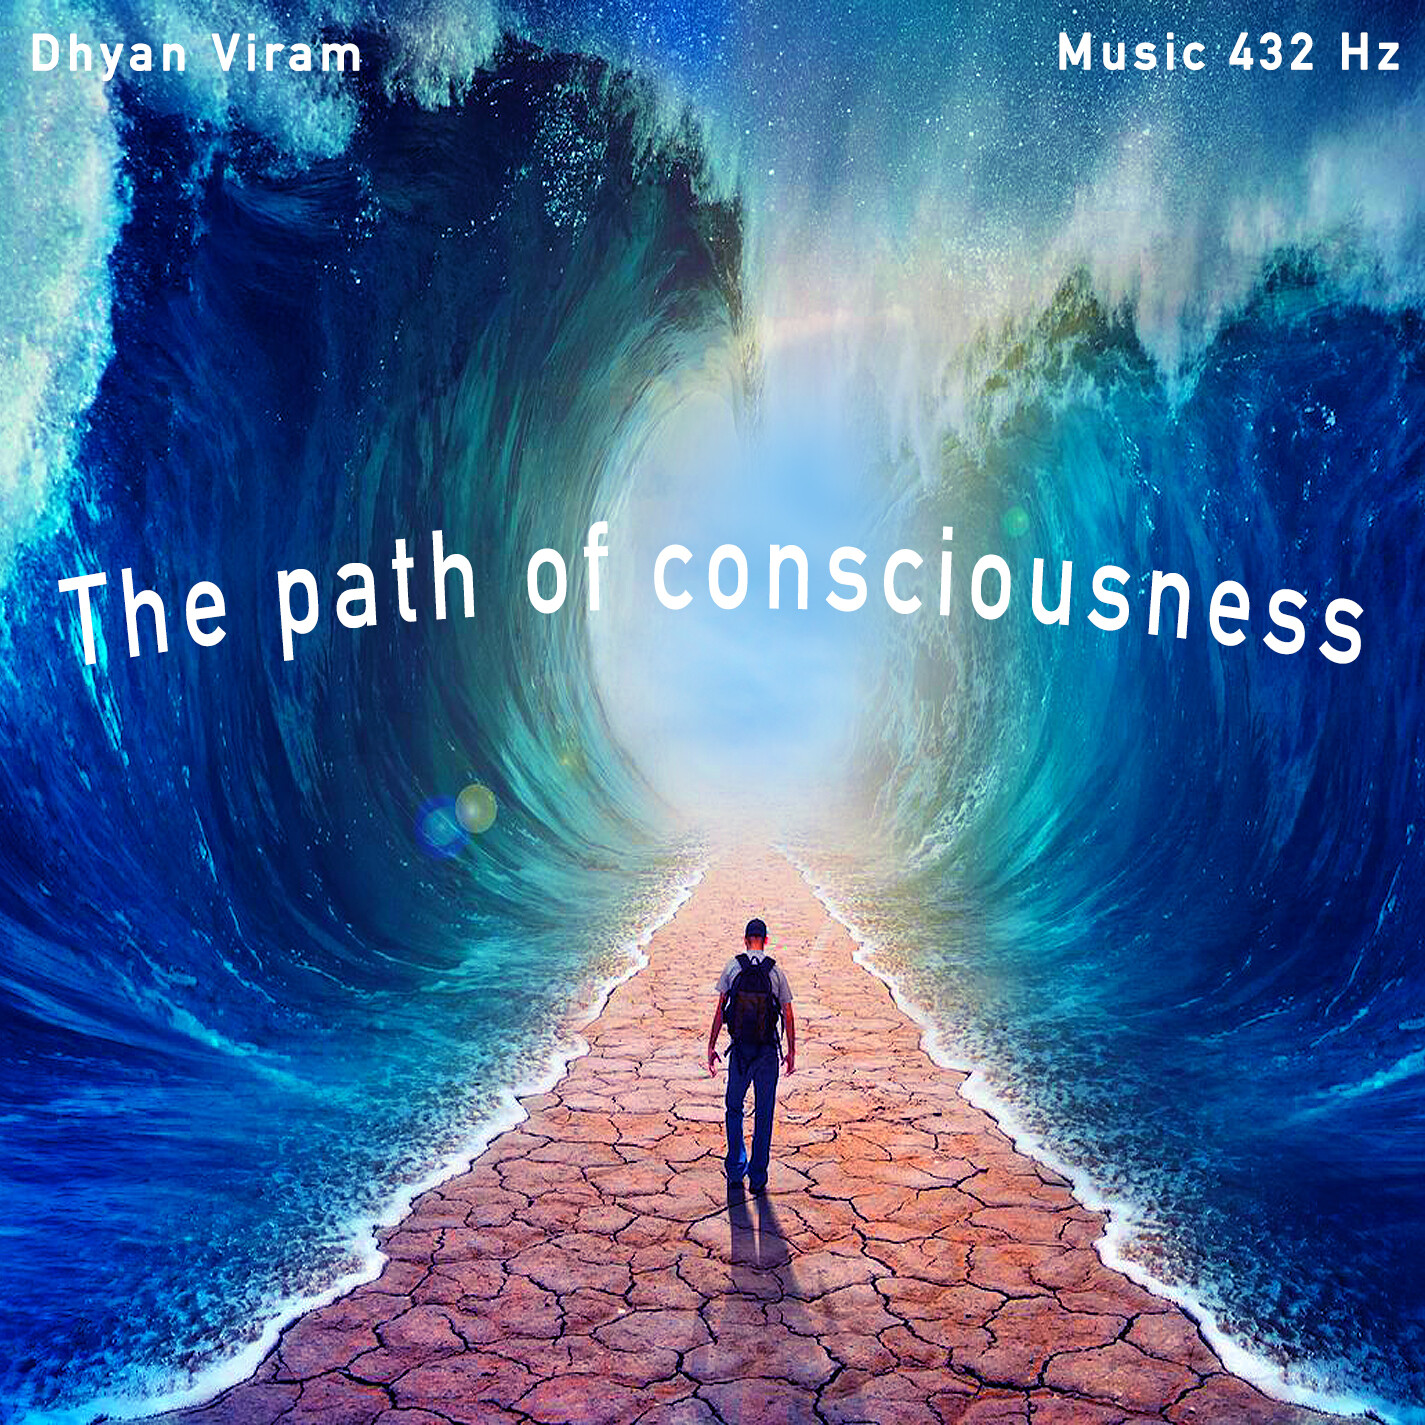 The path of consciousness